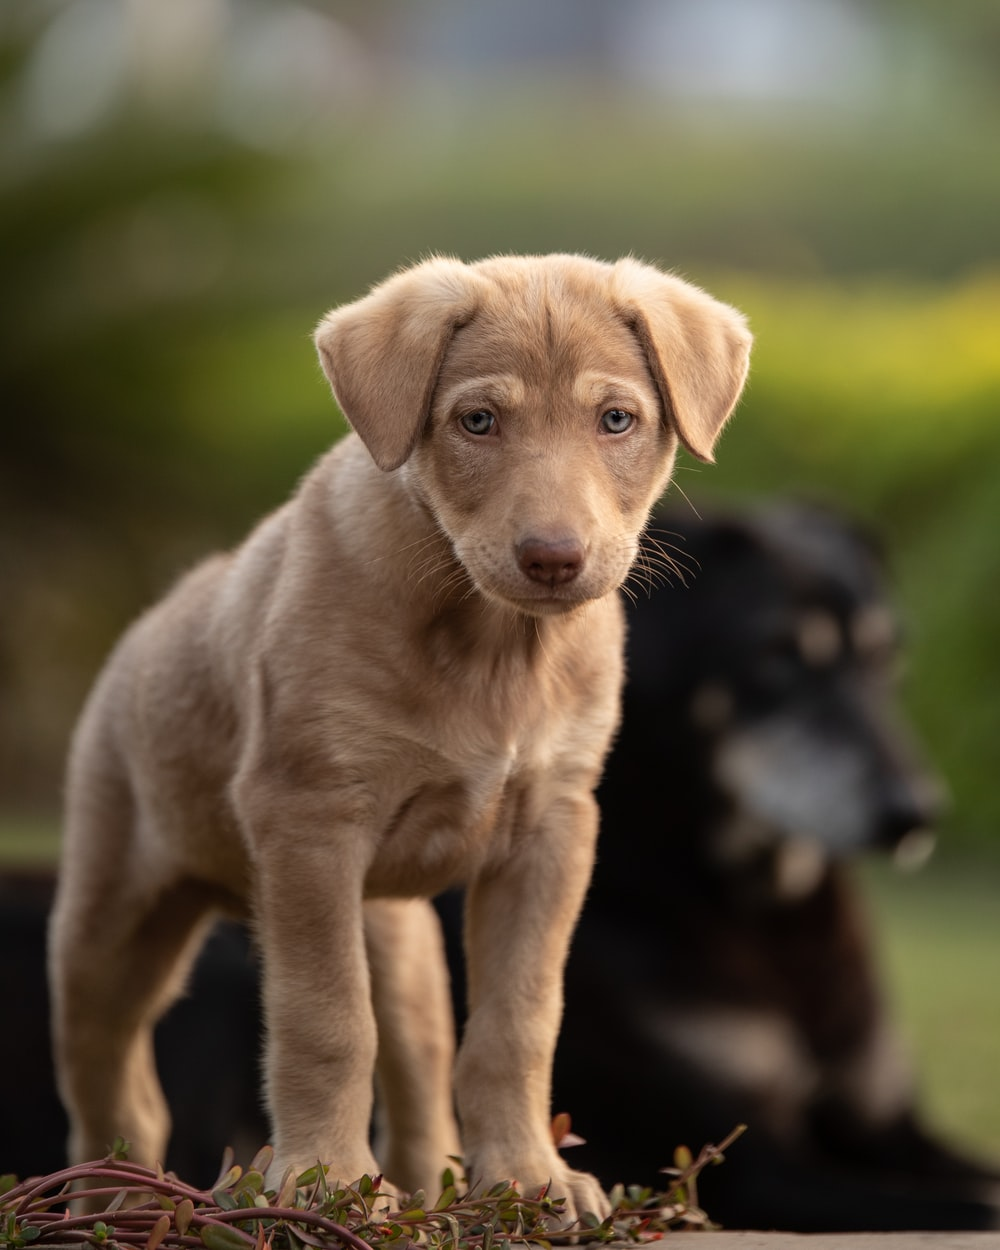 brown short coated puppy on green grass during daytime